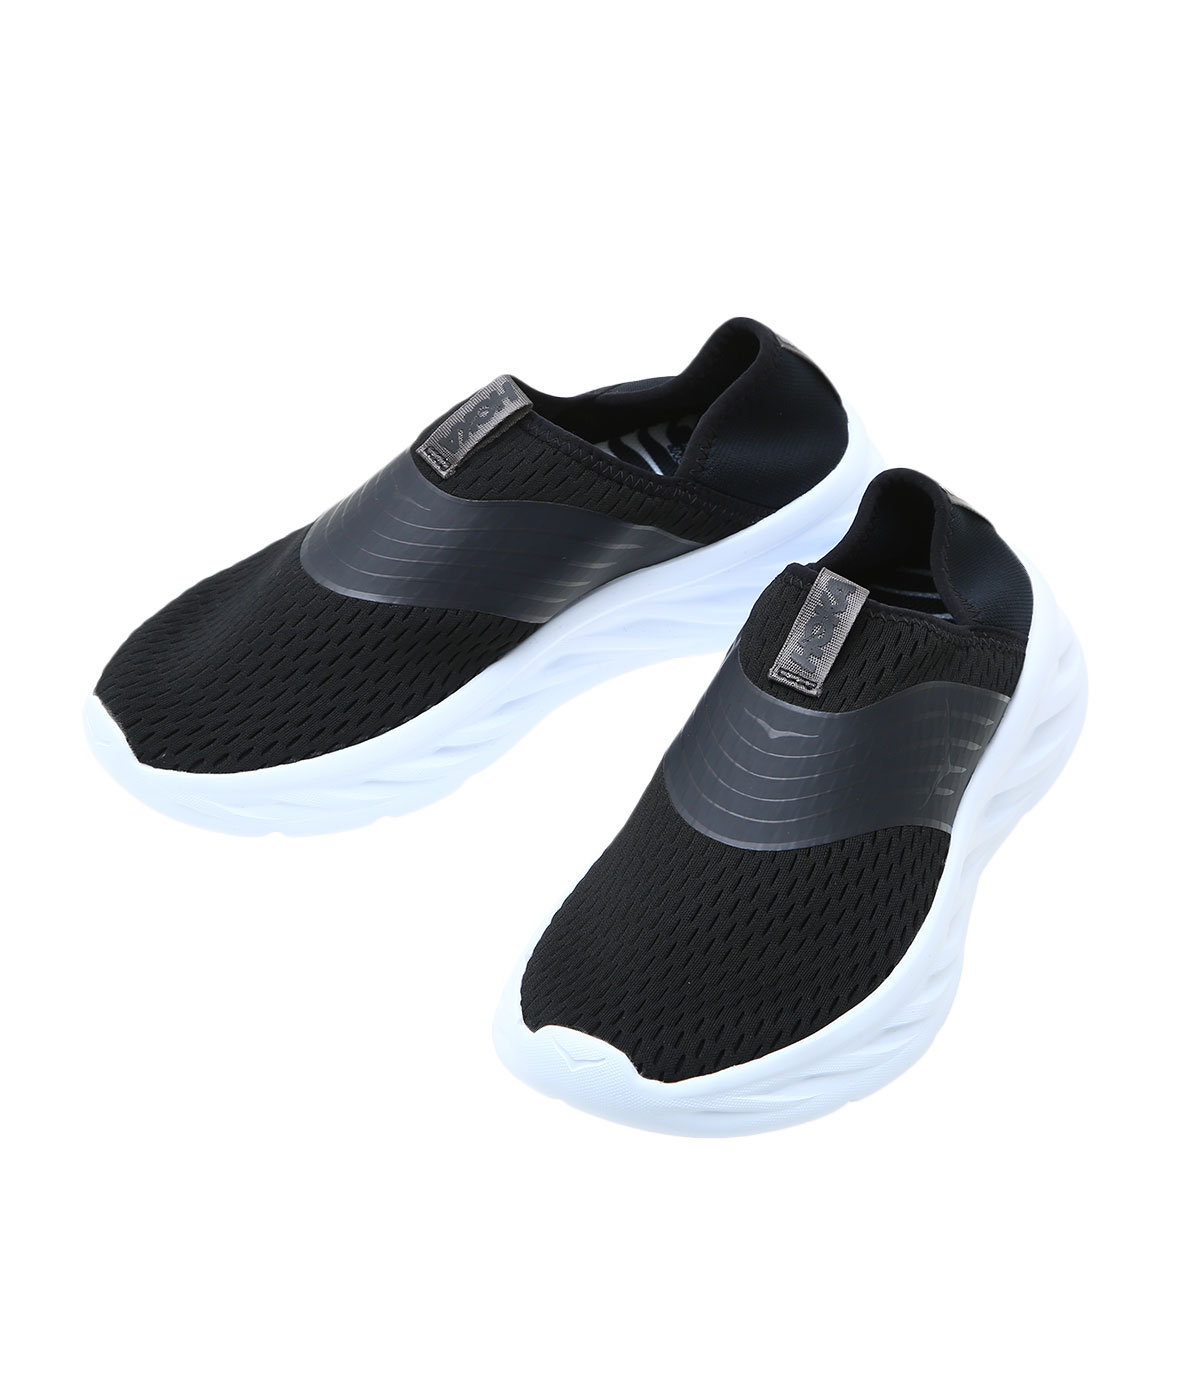 ORA RECOVERY SHOES